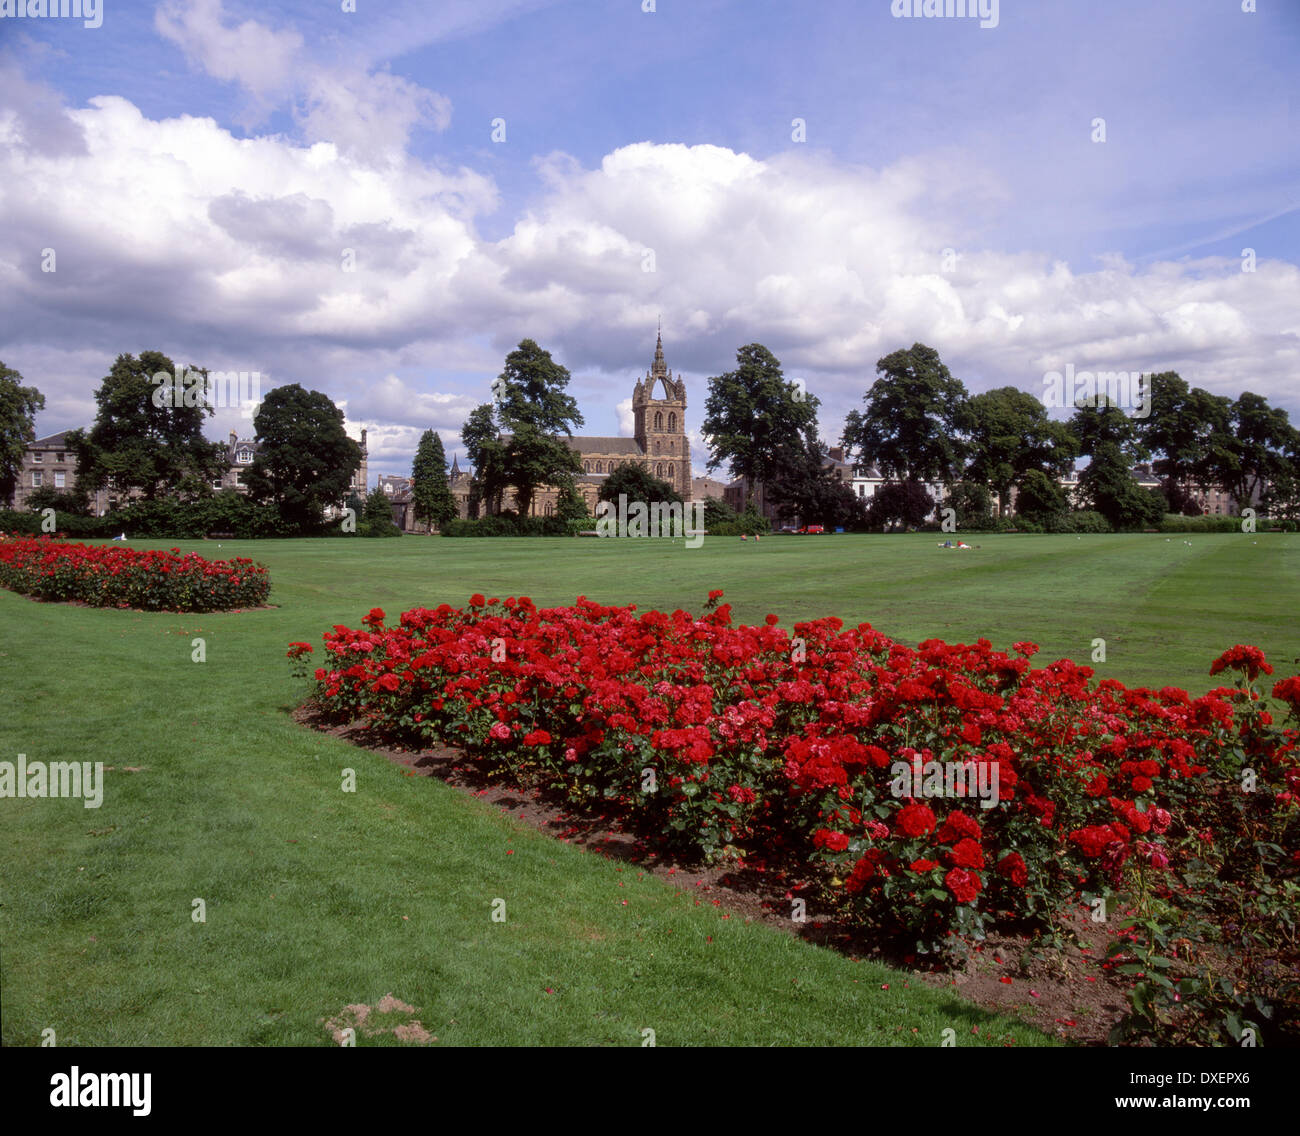 Summer across the south Inches towards Marshall Place, City of Perth. - Stock Image